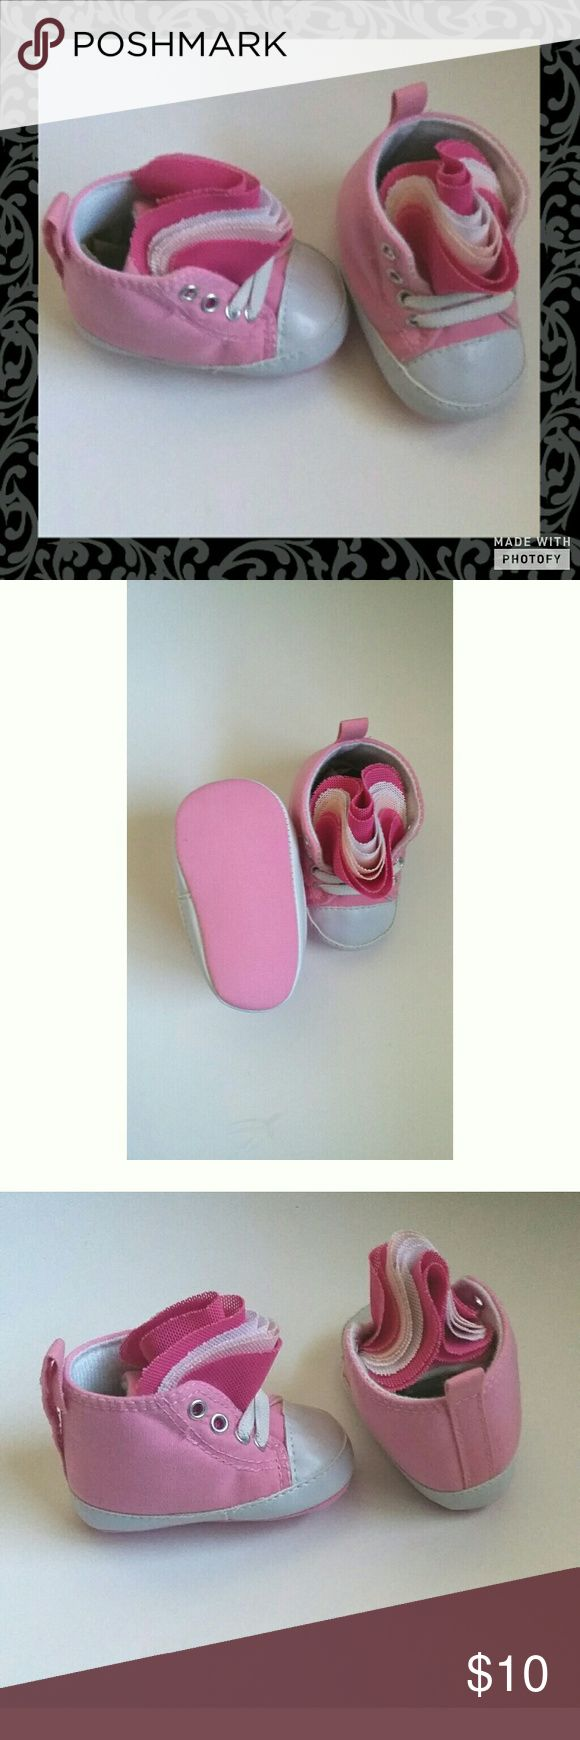 Pink High Top Rising Star Crib Shoes Light pink high top crib shoes. Tule like material flap with different shades of pink. Size 3 to 6 months. In excellent used condition. Light comfortable material for baby feet. Rising Star  Shoes